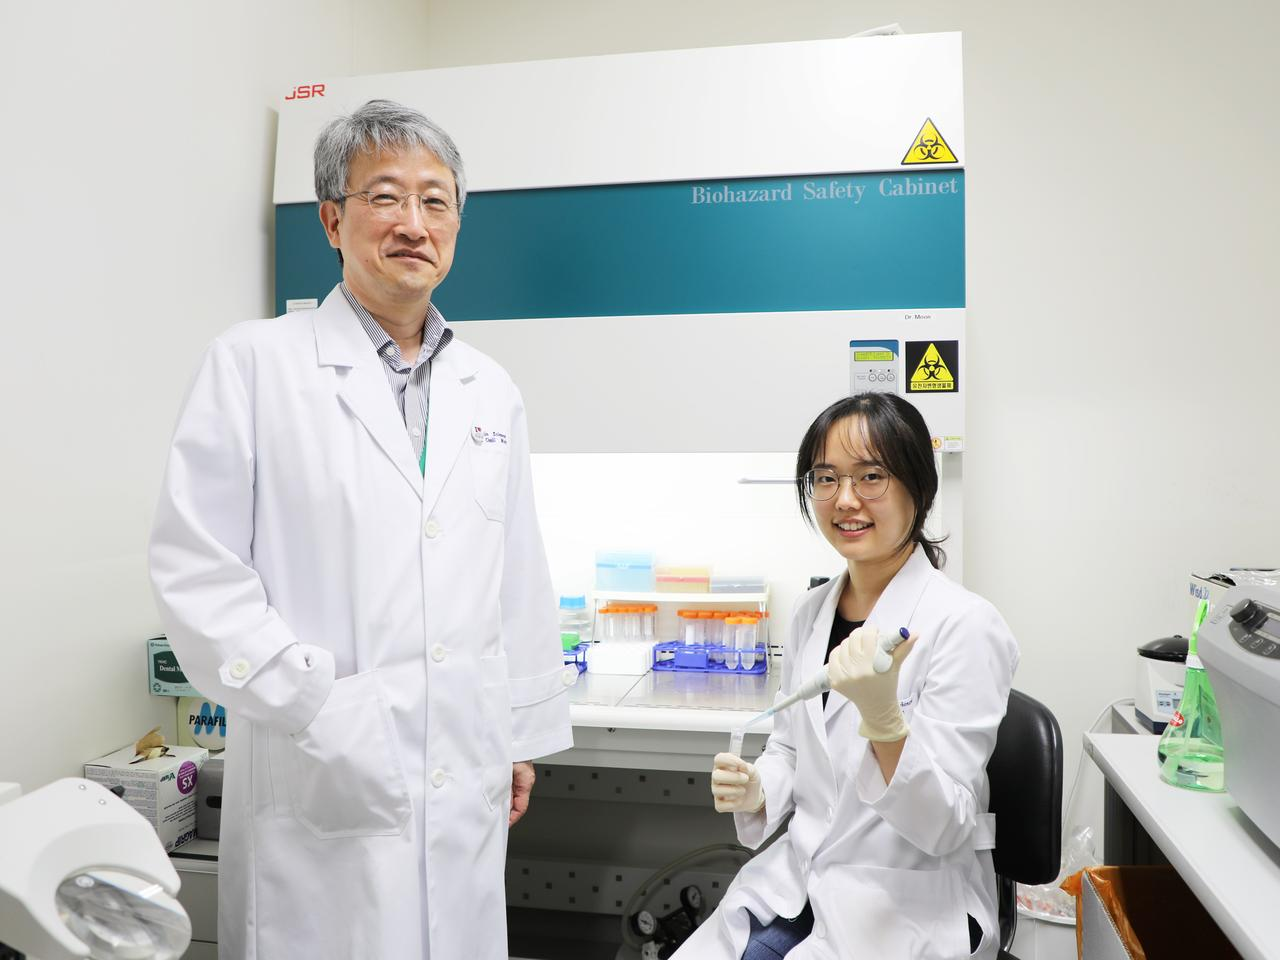 Alzheimer's researchers Professor Cheil Moon (left) and Gowoon Son (right) analyzing nasal discharge samples in the lab at Daegu Gyeongbuk Institute of Science and Technology